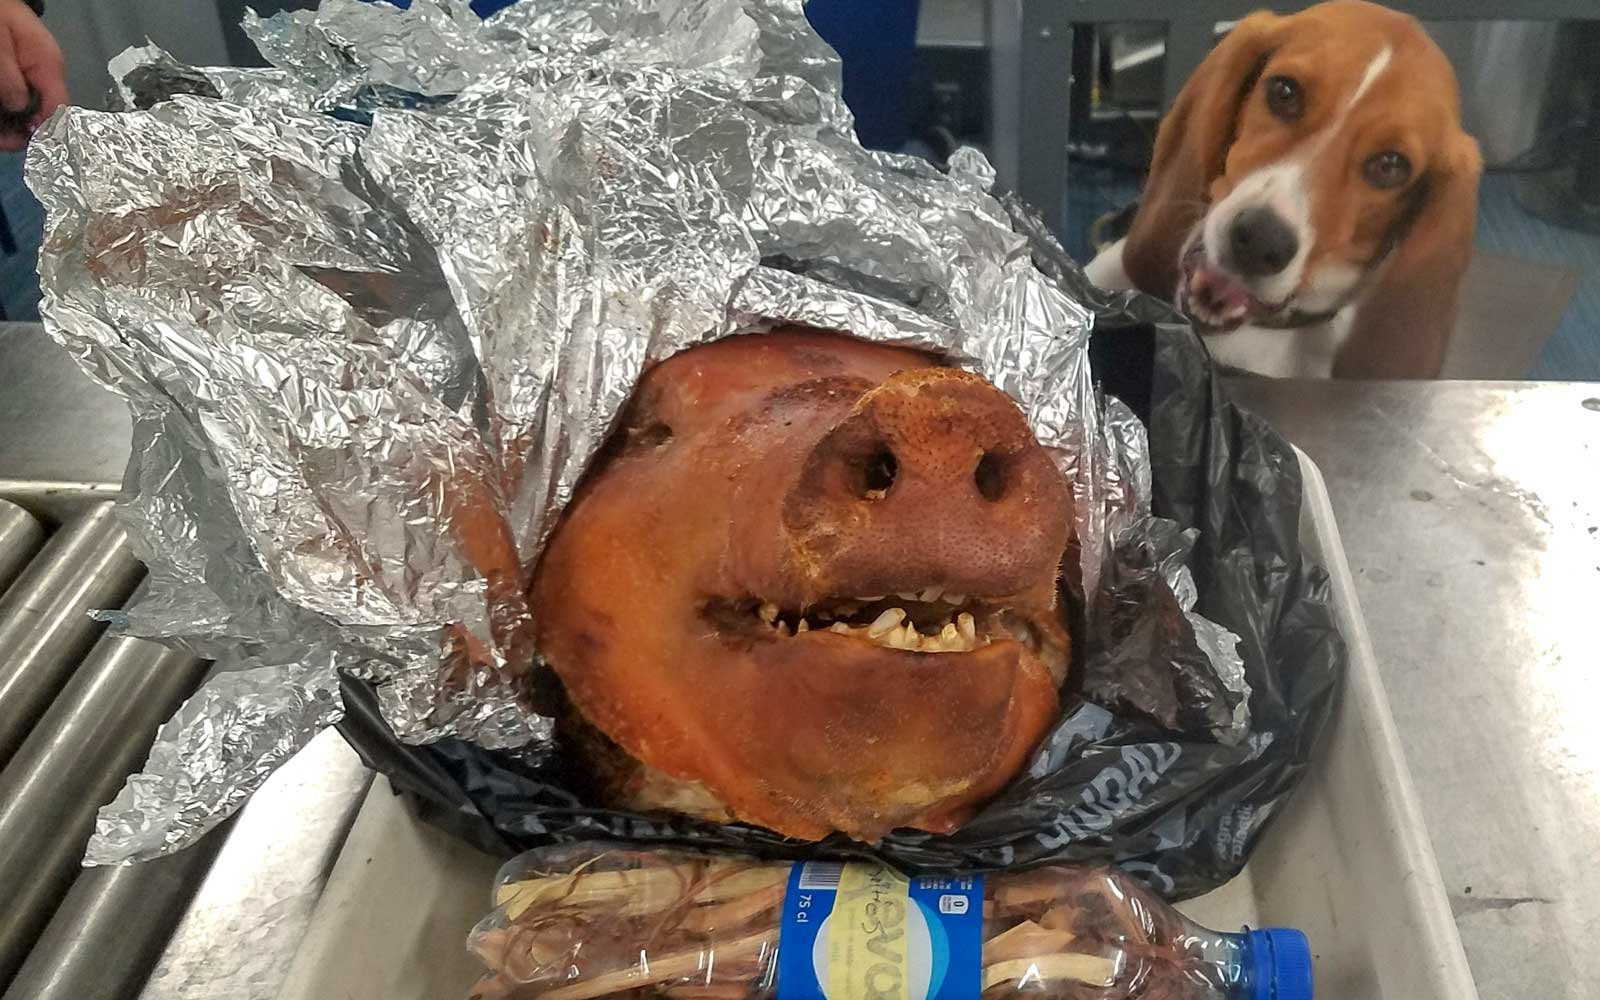 Cooked pig found by CBP dog, Hardy at Atlanta Airport